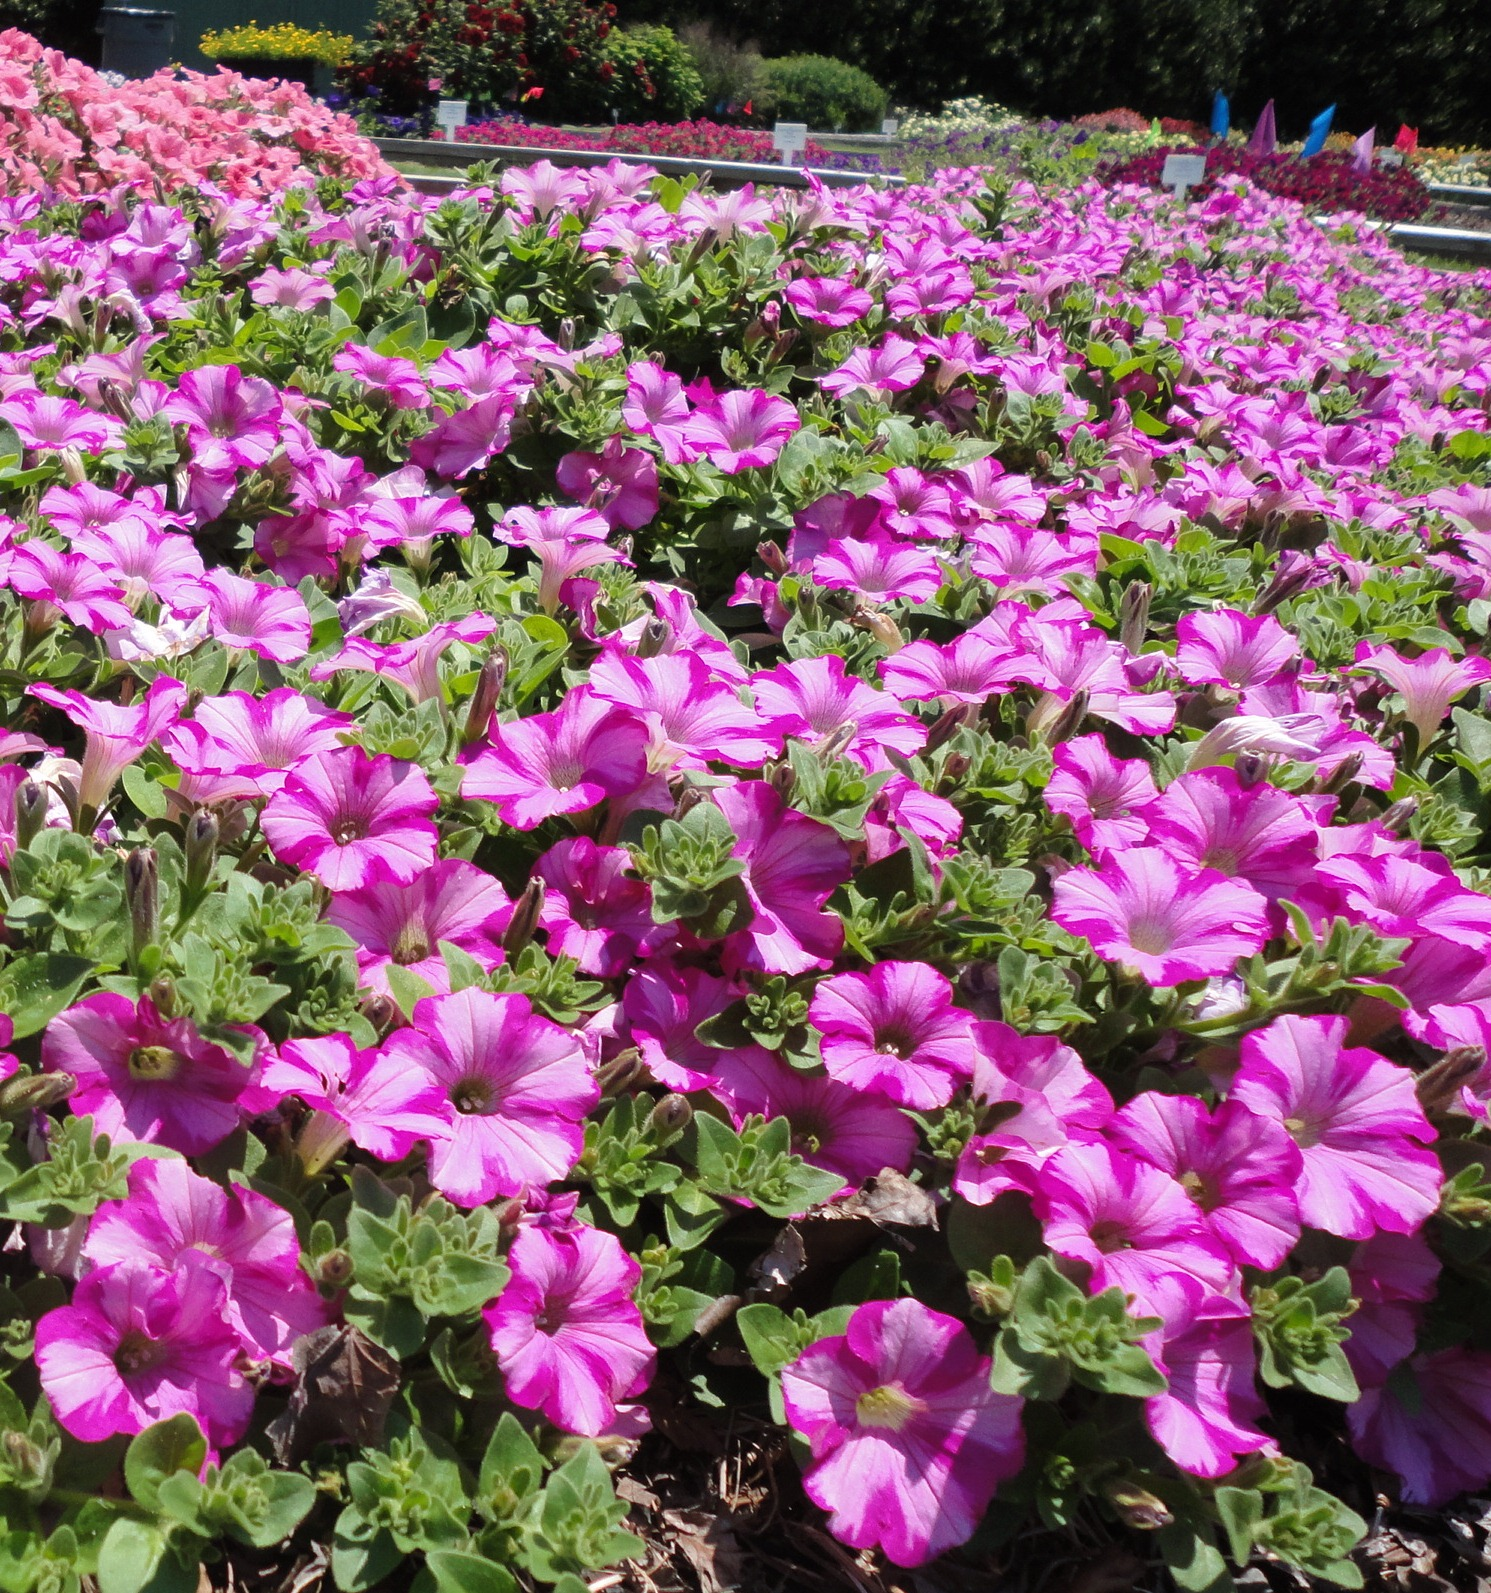 Images/johnsonnursery/Products/Annuals/Petunia_Supertunia_Raspberry Wallpaper